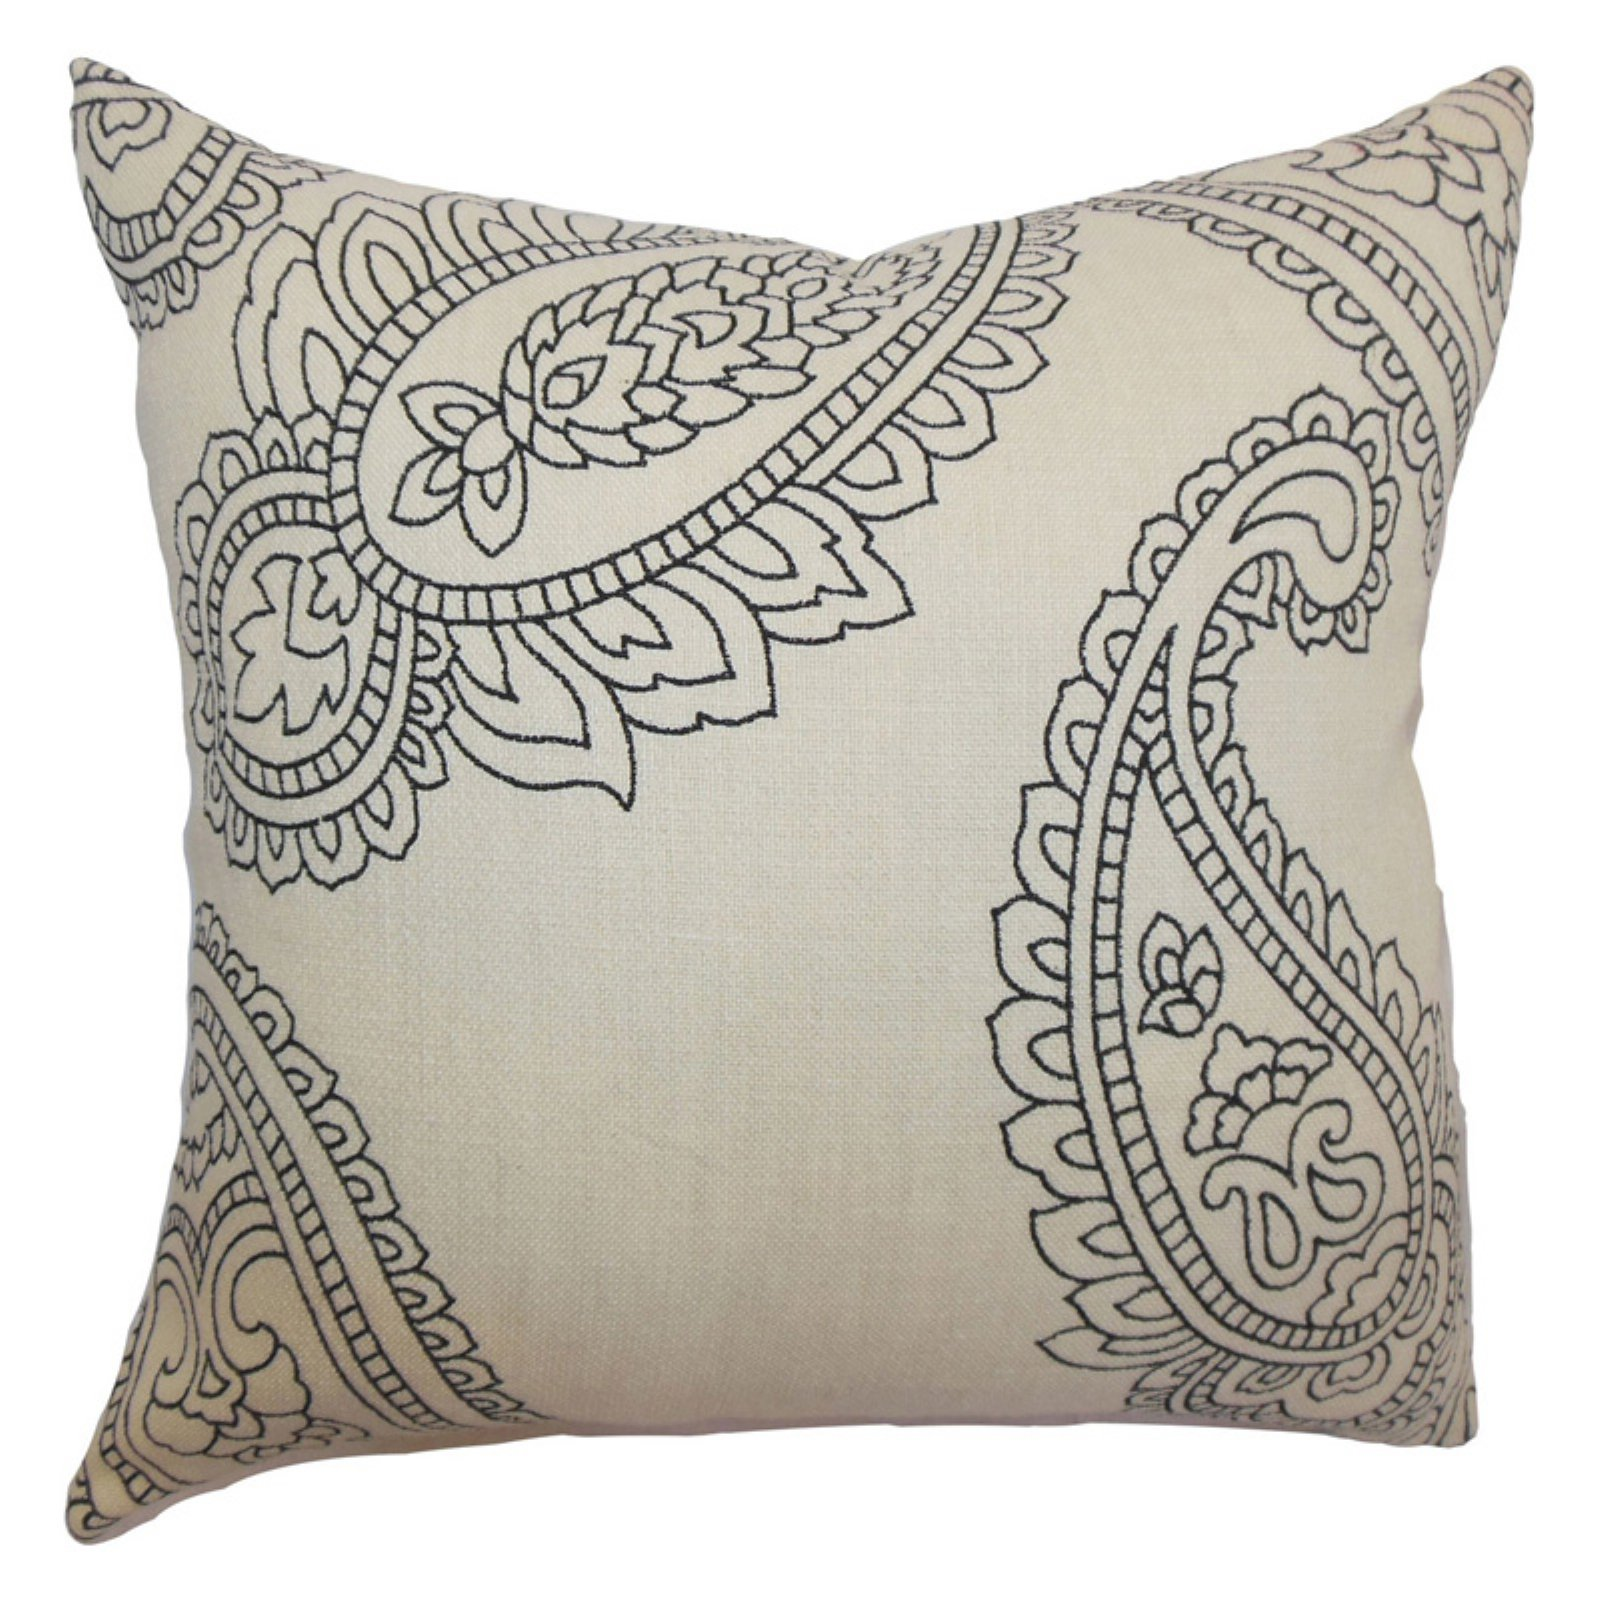 The Pillow Collection Verity Paisley Pillow - Charcoal